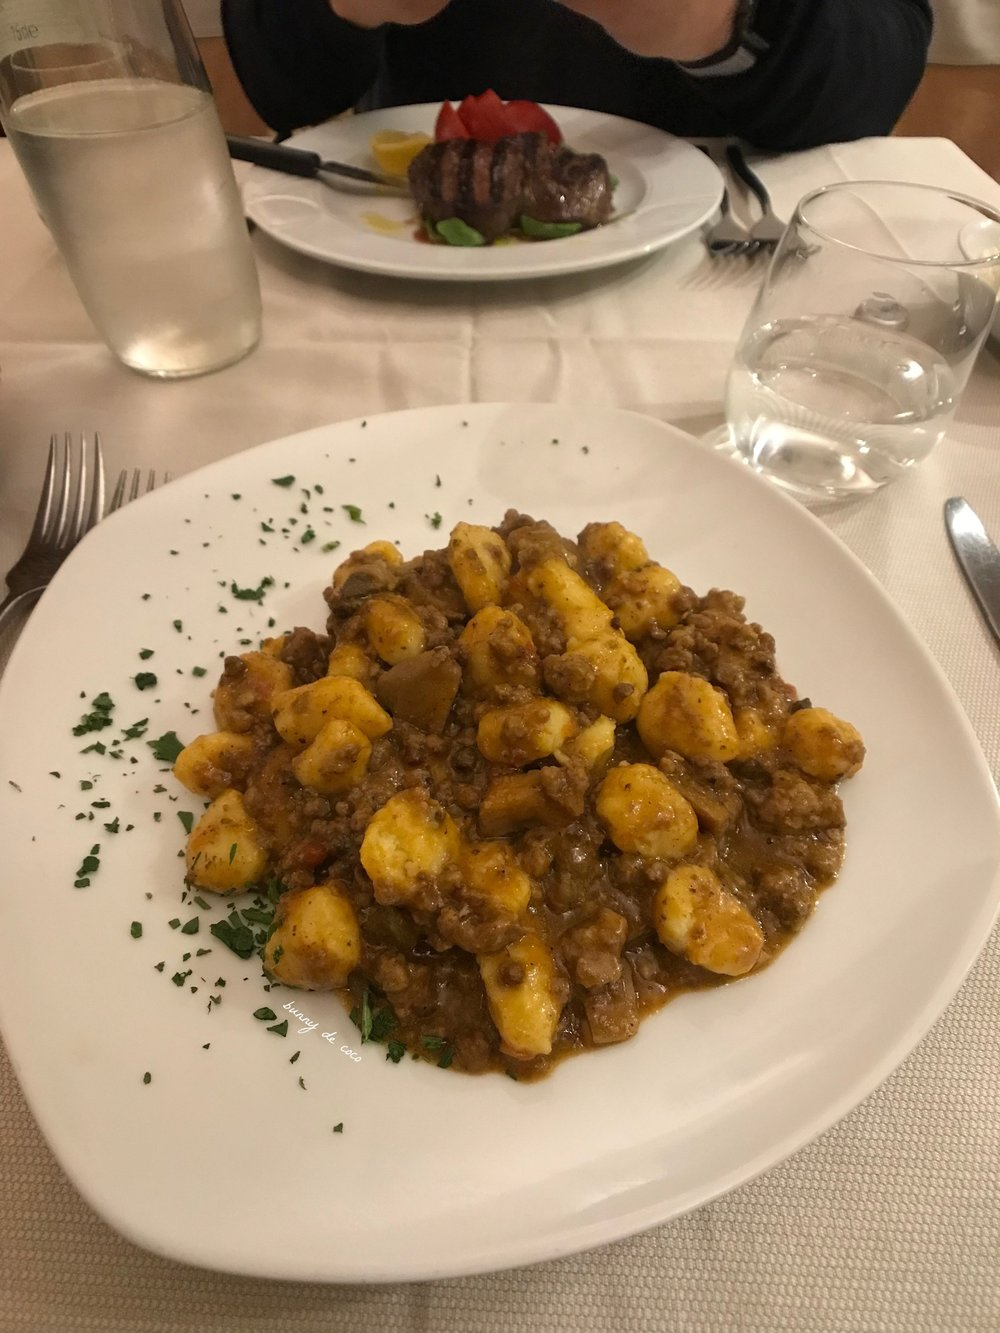 This is what the best gnocchi actually looks like.